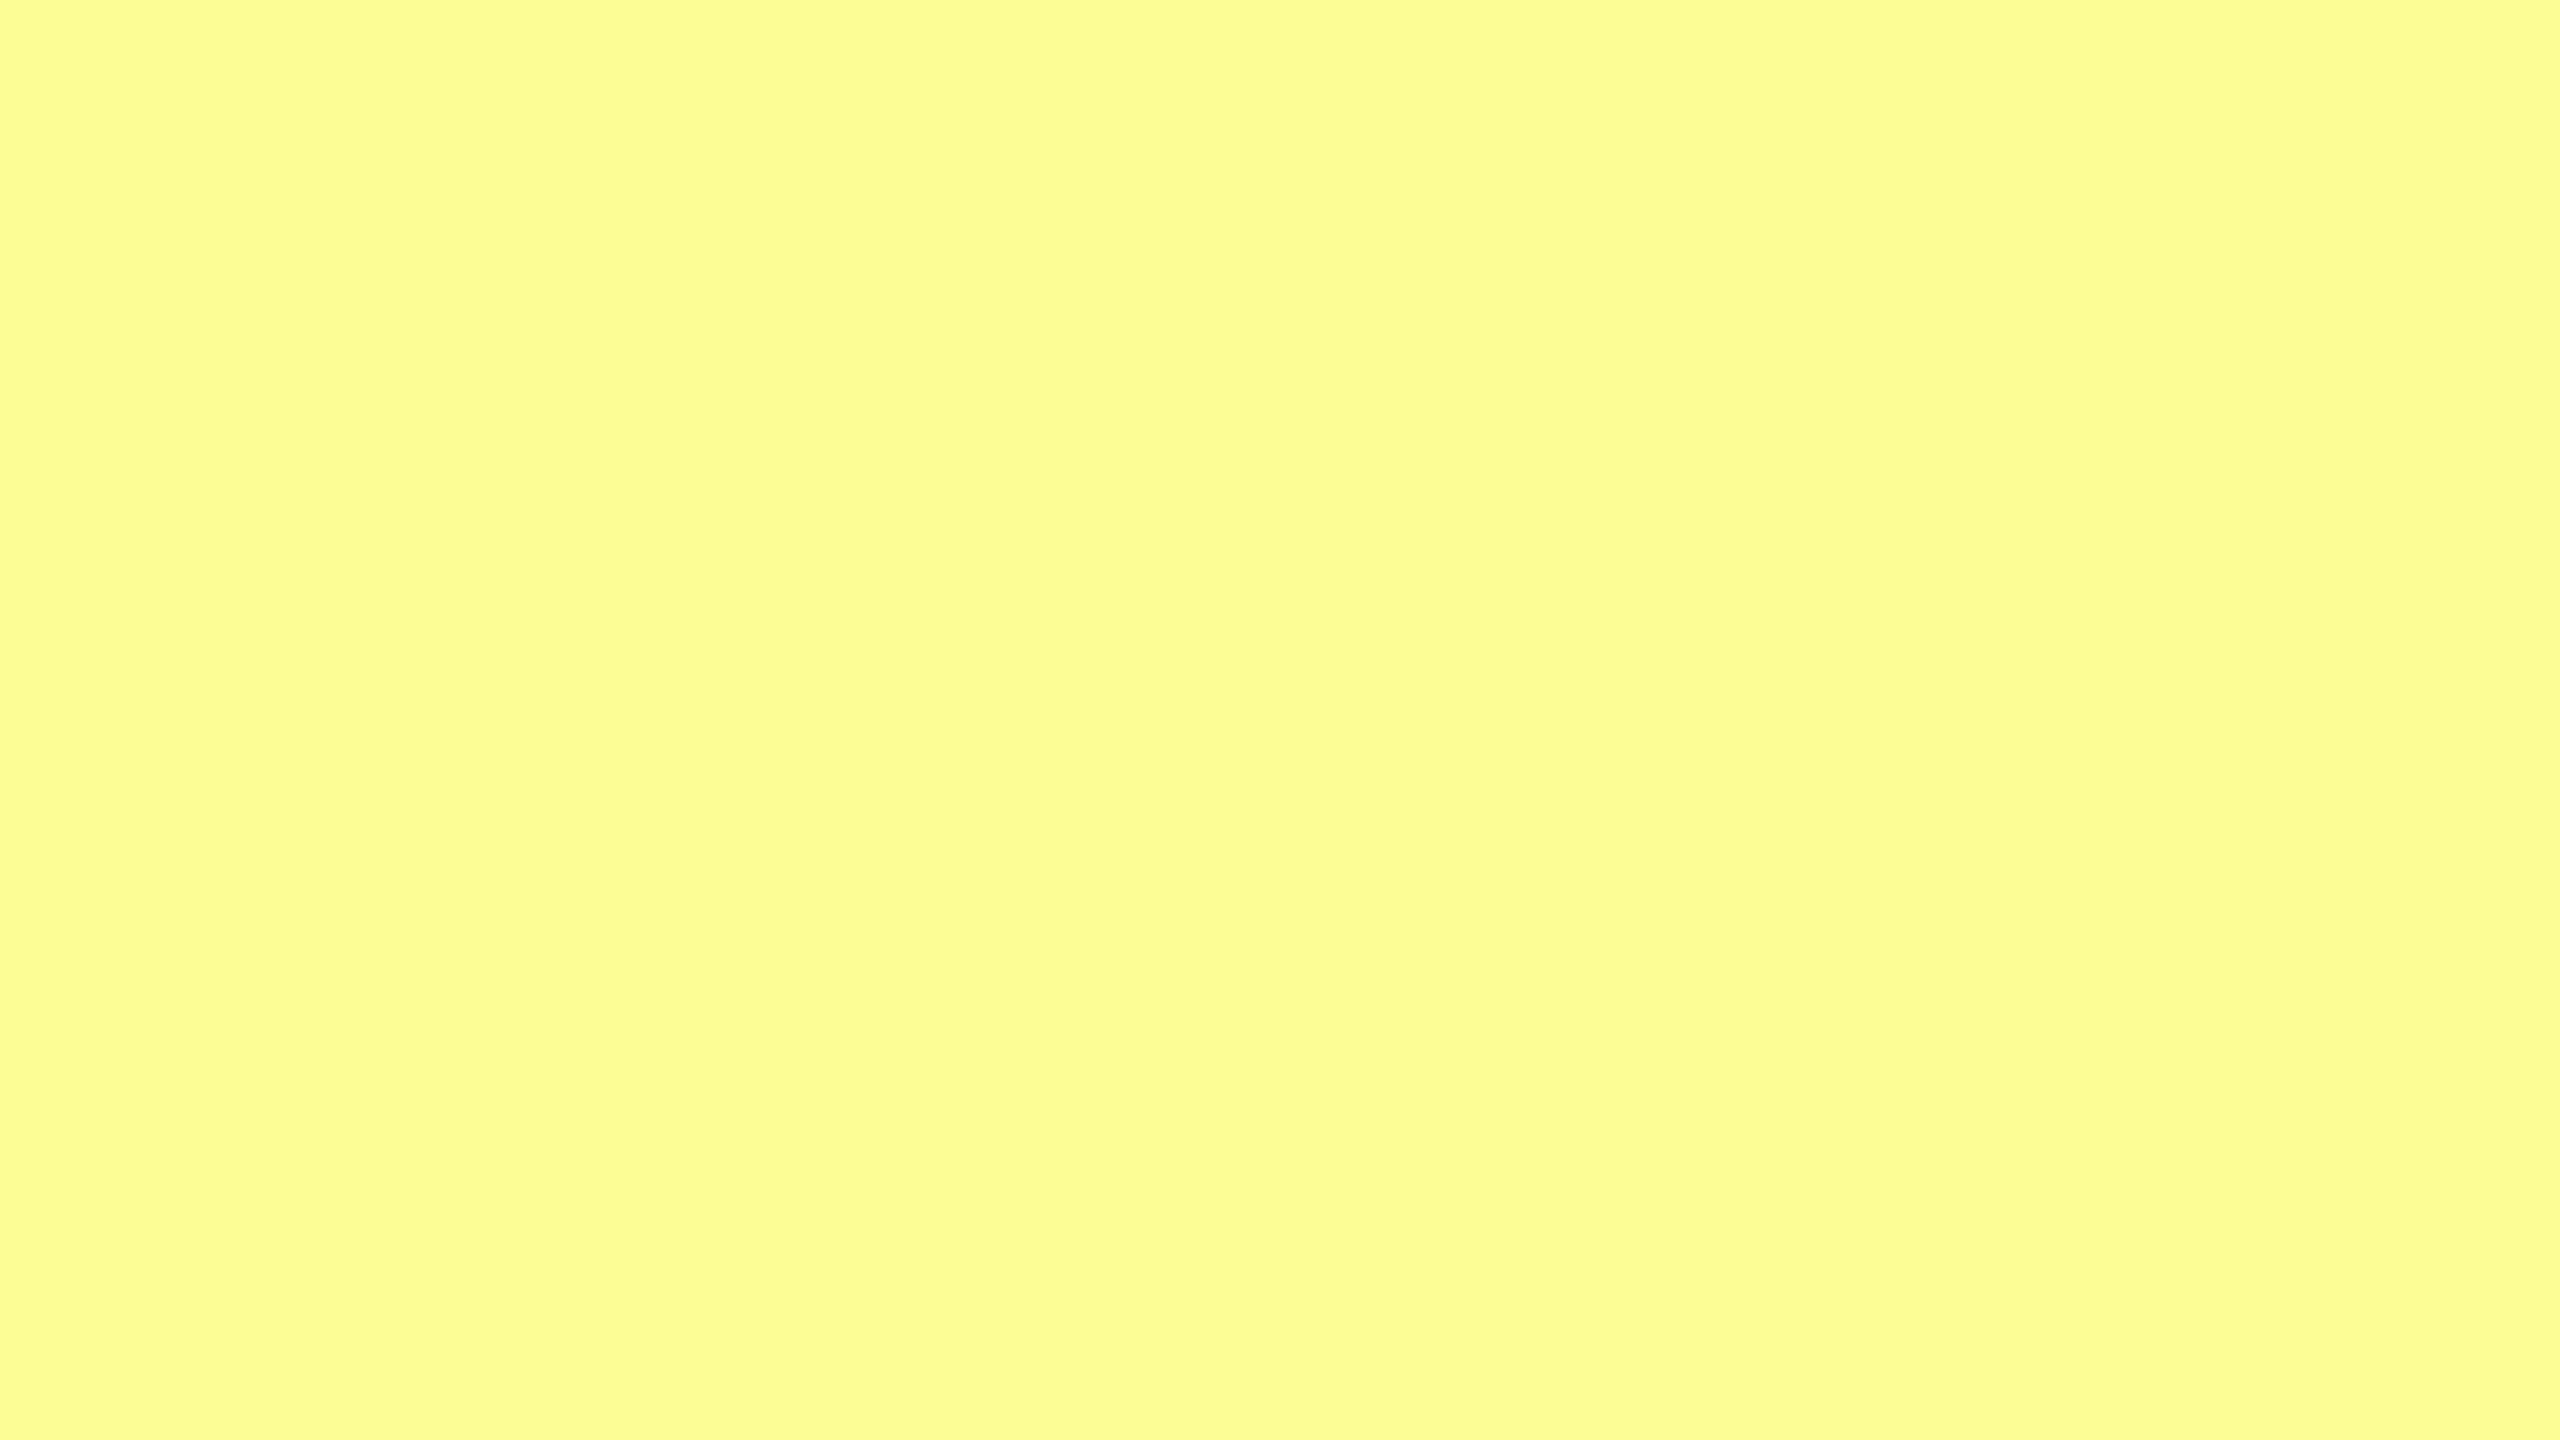 2560x1440 2560x1440 Pastel Yellow Solid Color Background